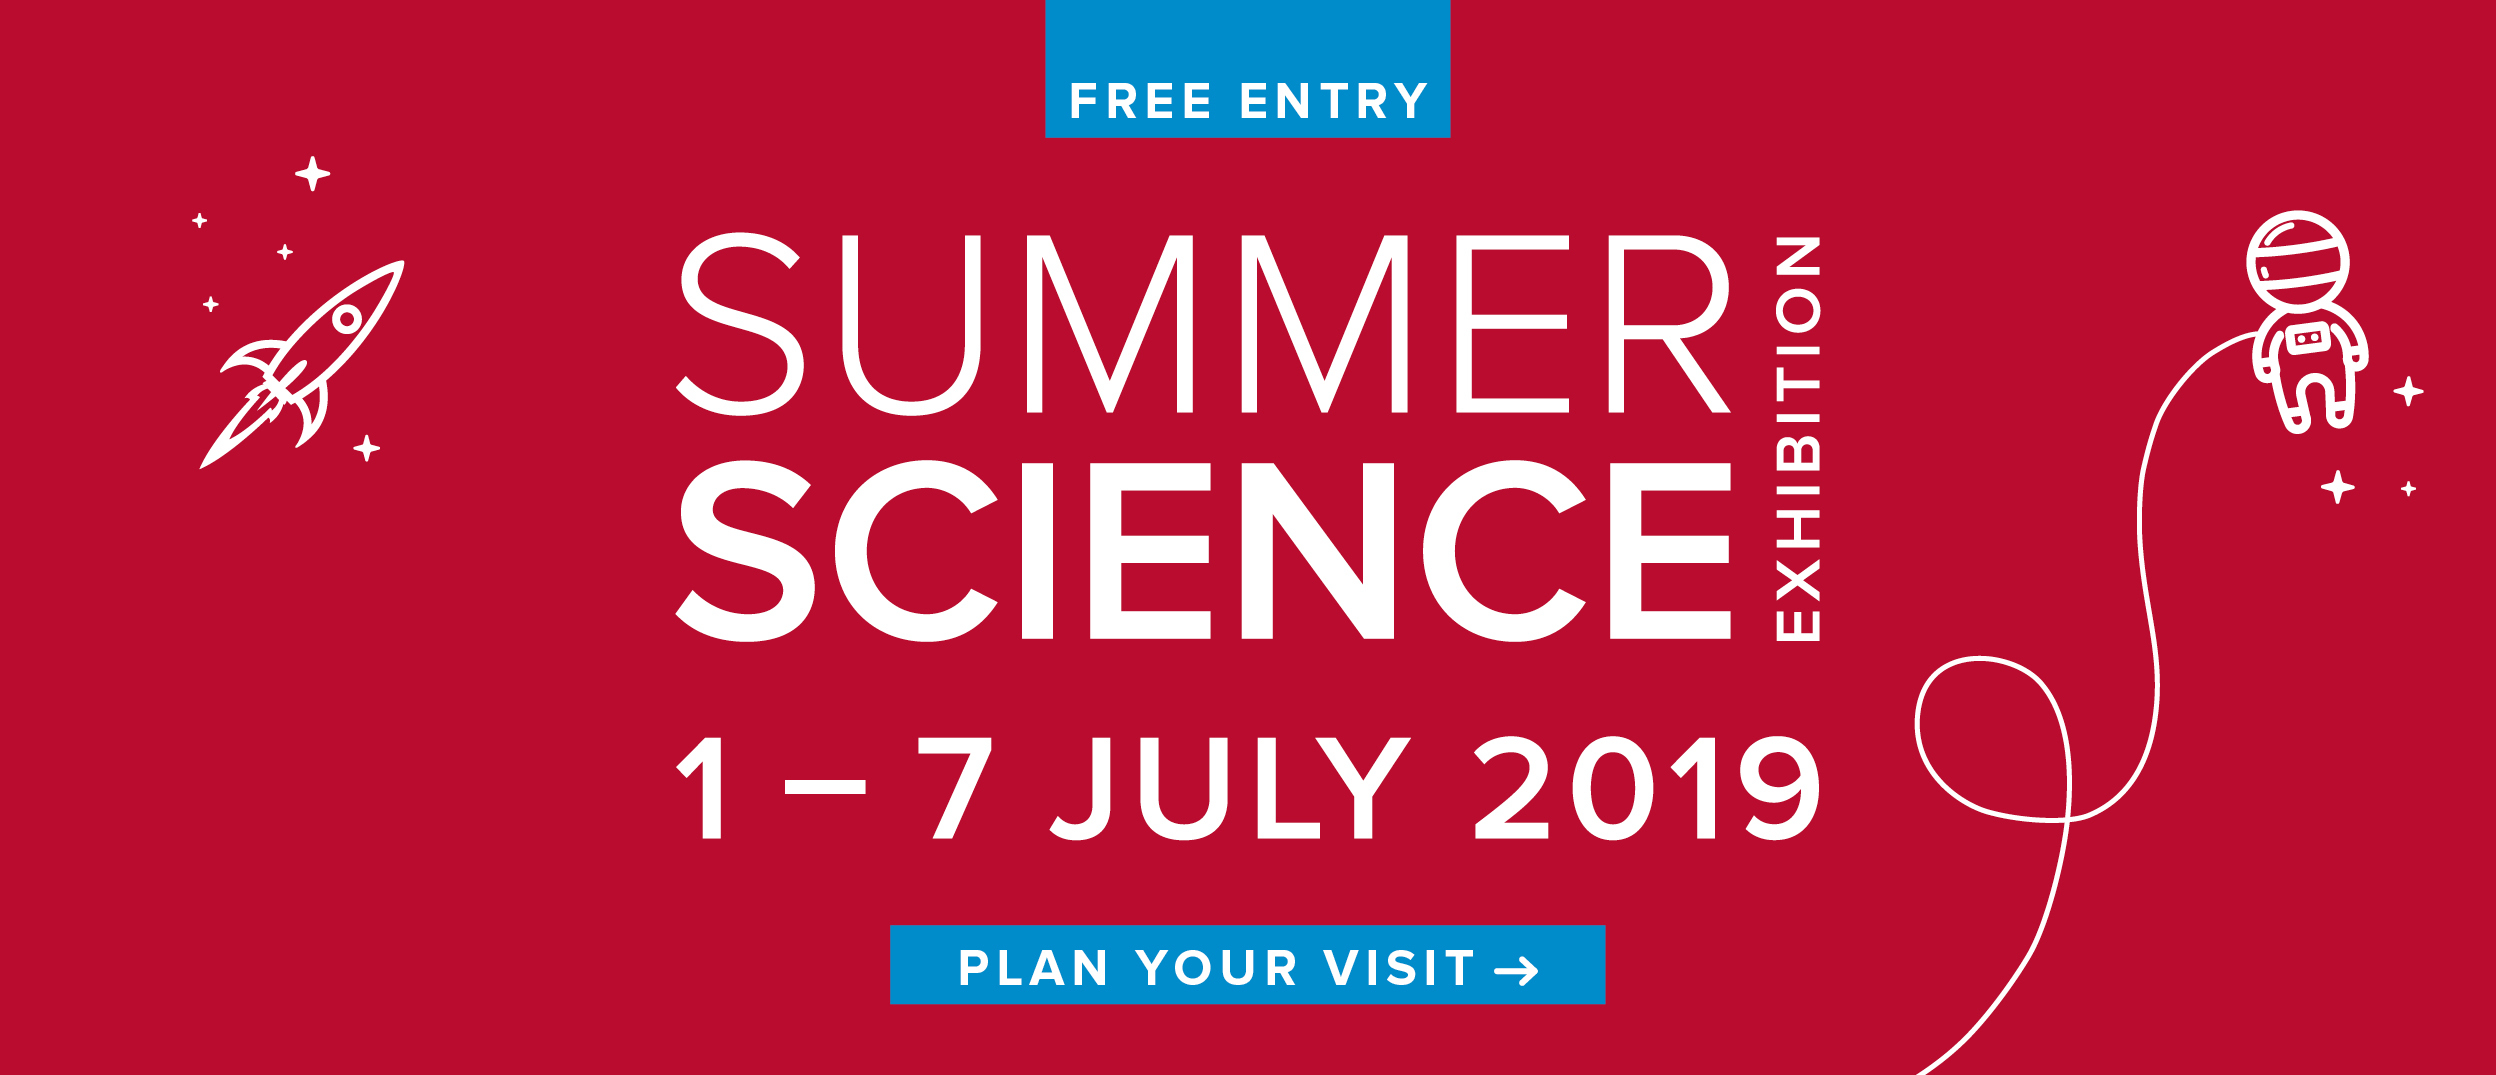 IMG SUMMER SCIENCE